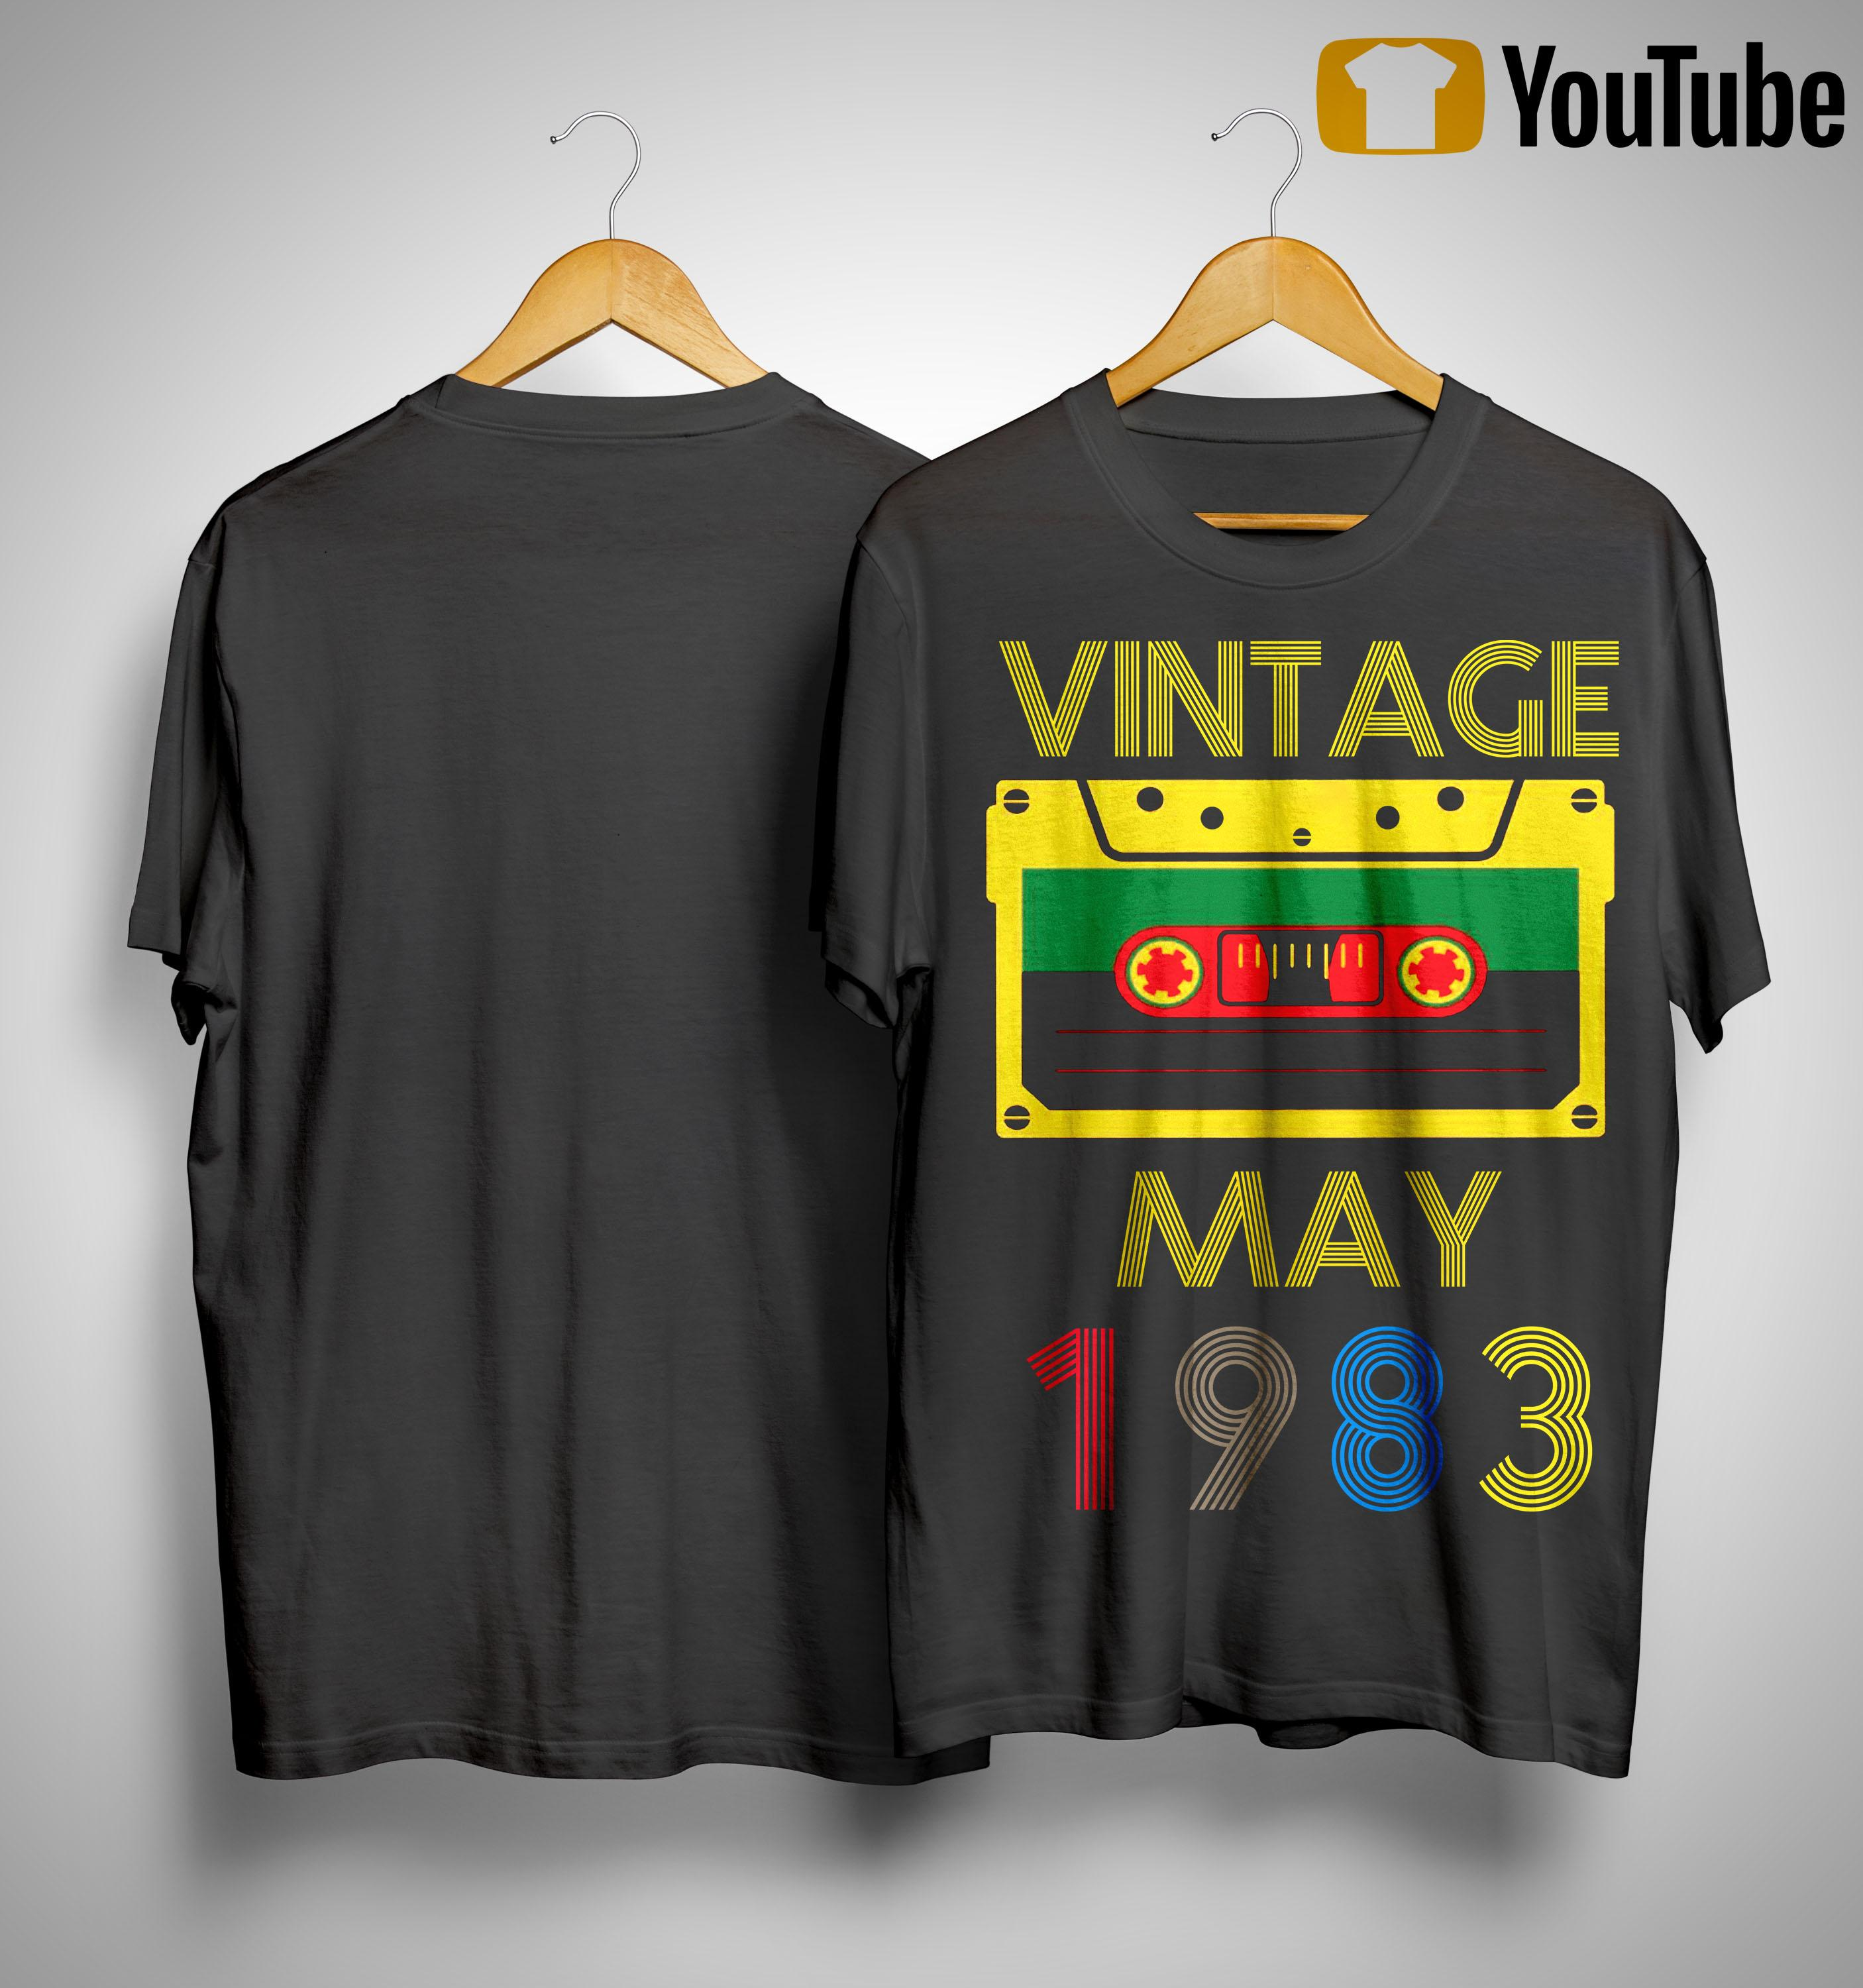 Video Tape Vintage May 1983 Shirt